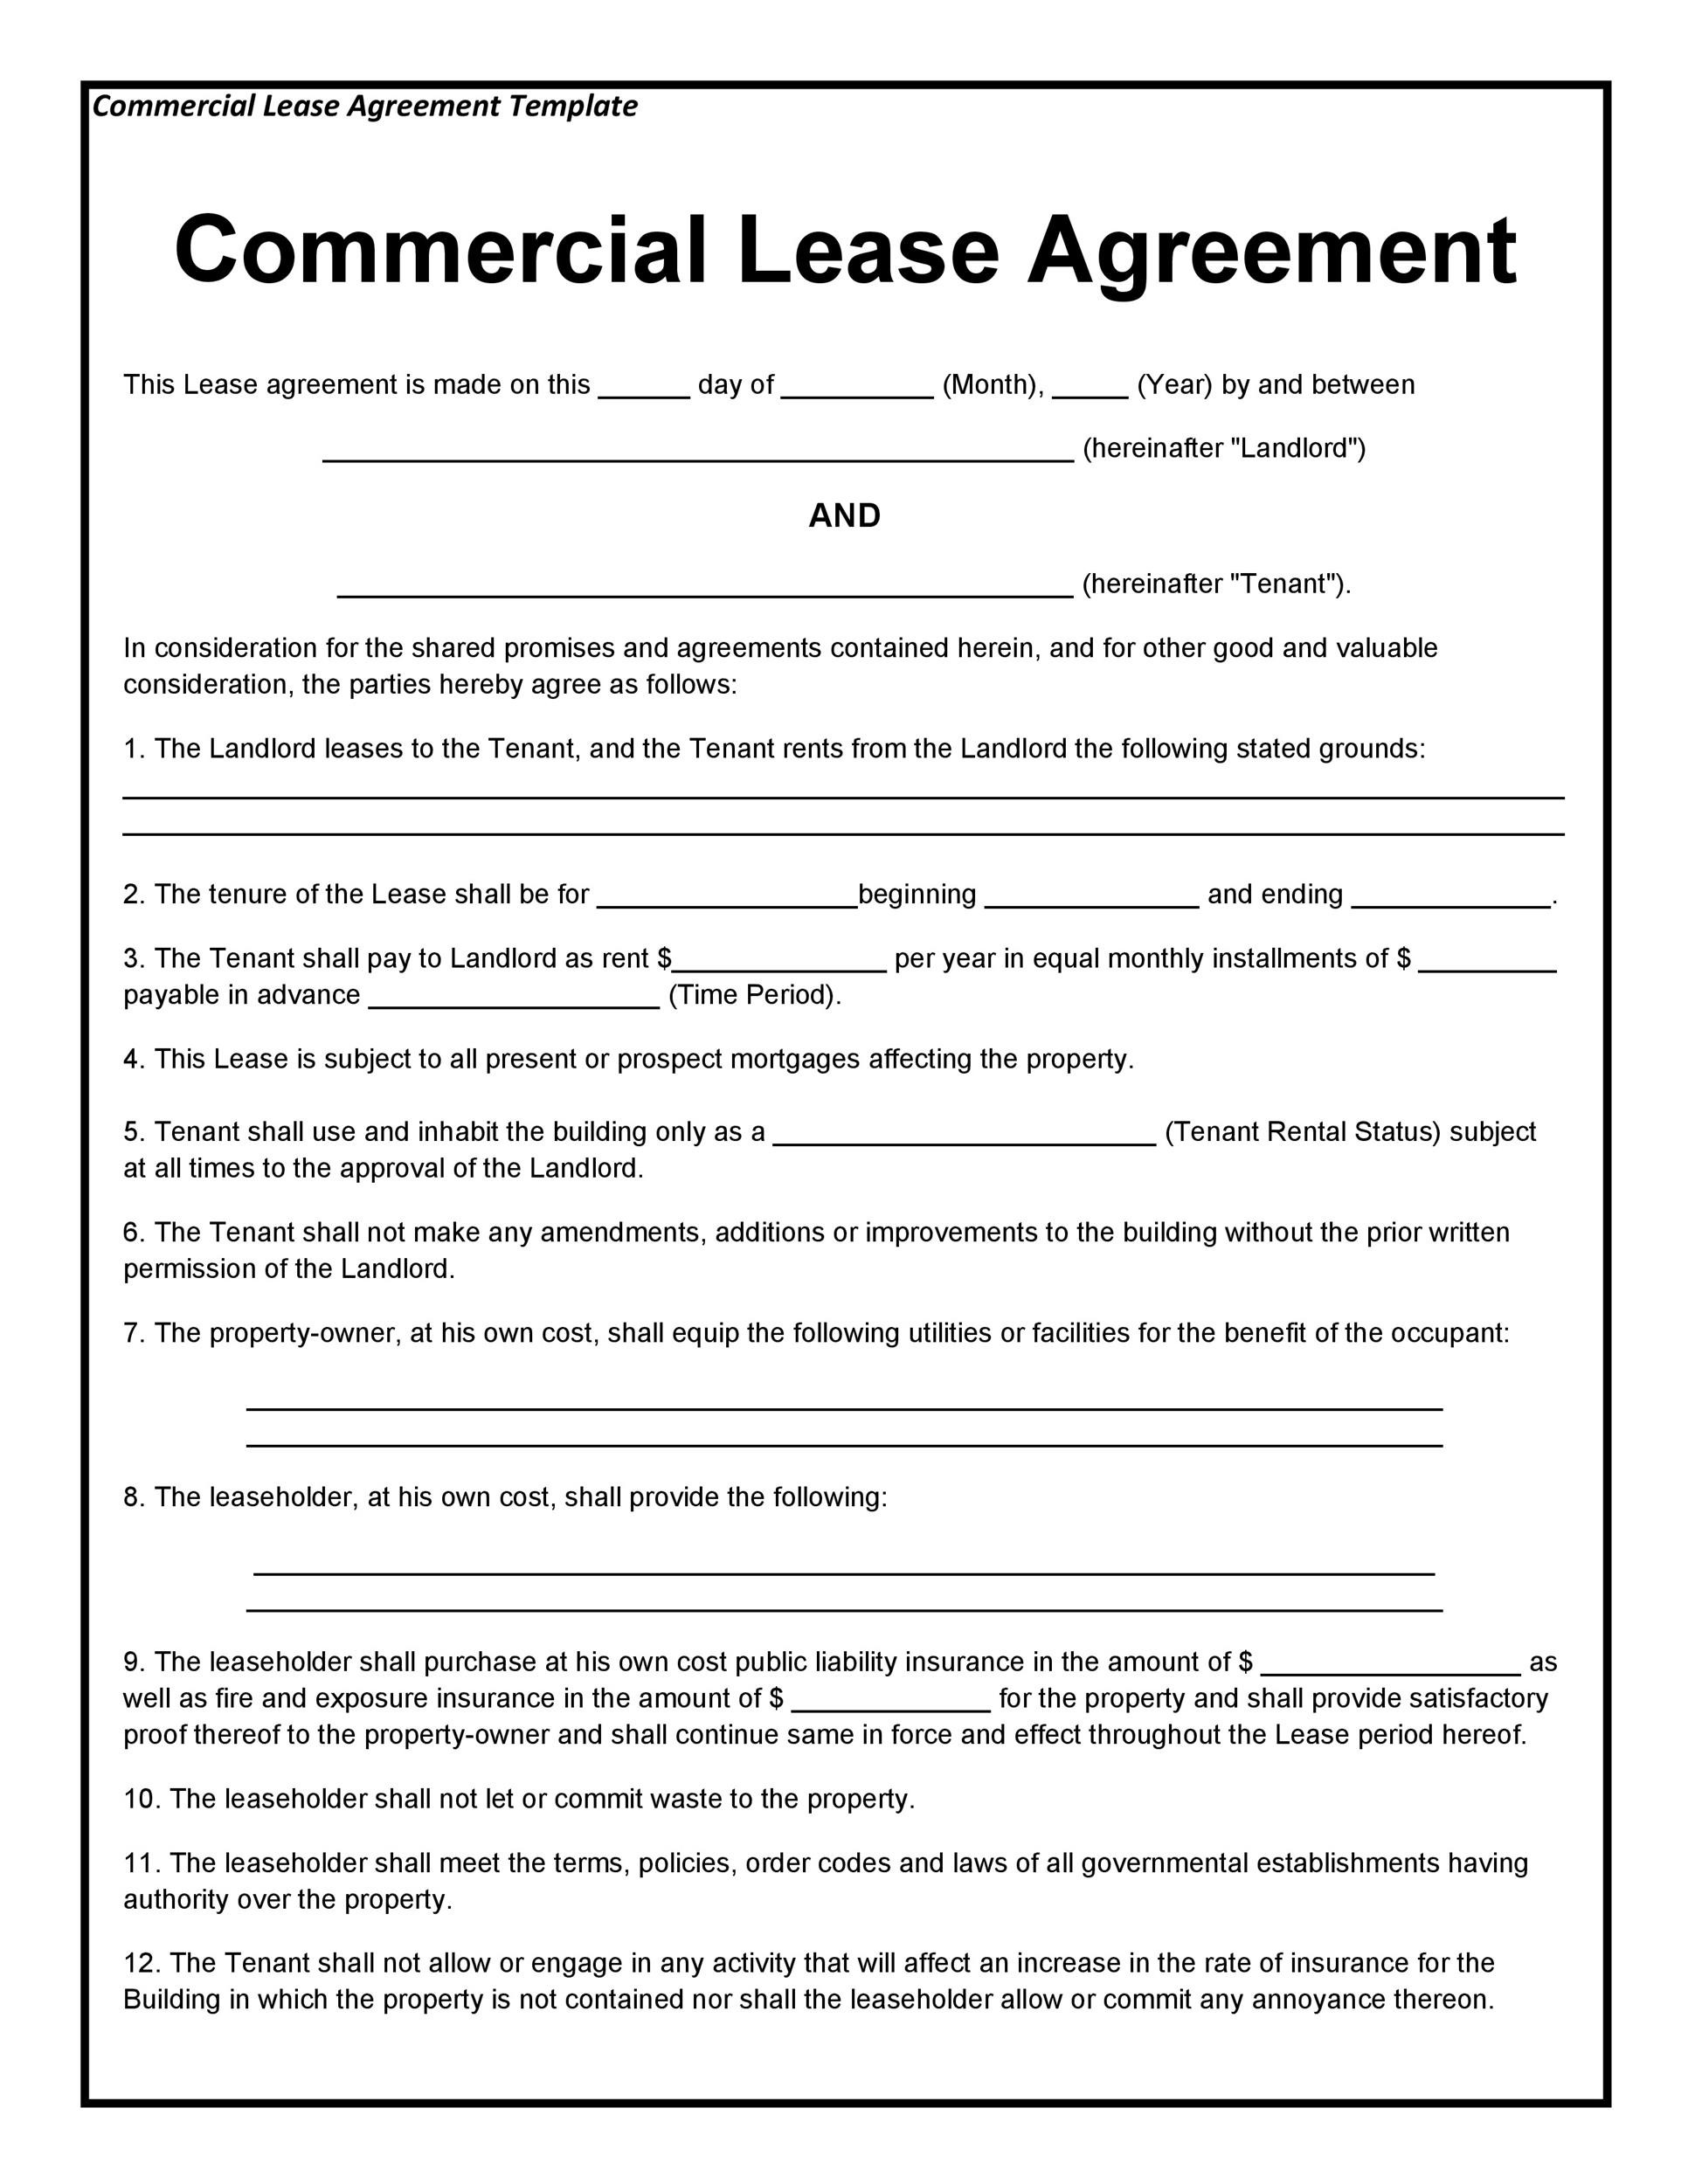 Superb Printable Commercial Lease Agreement Template 04 Regarding Commercial Rent Agreement Format